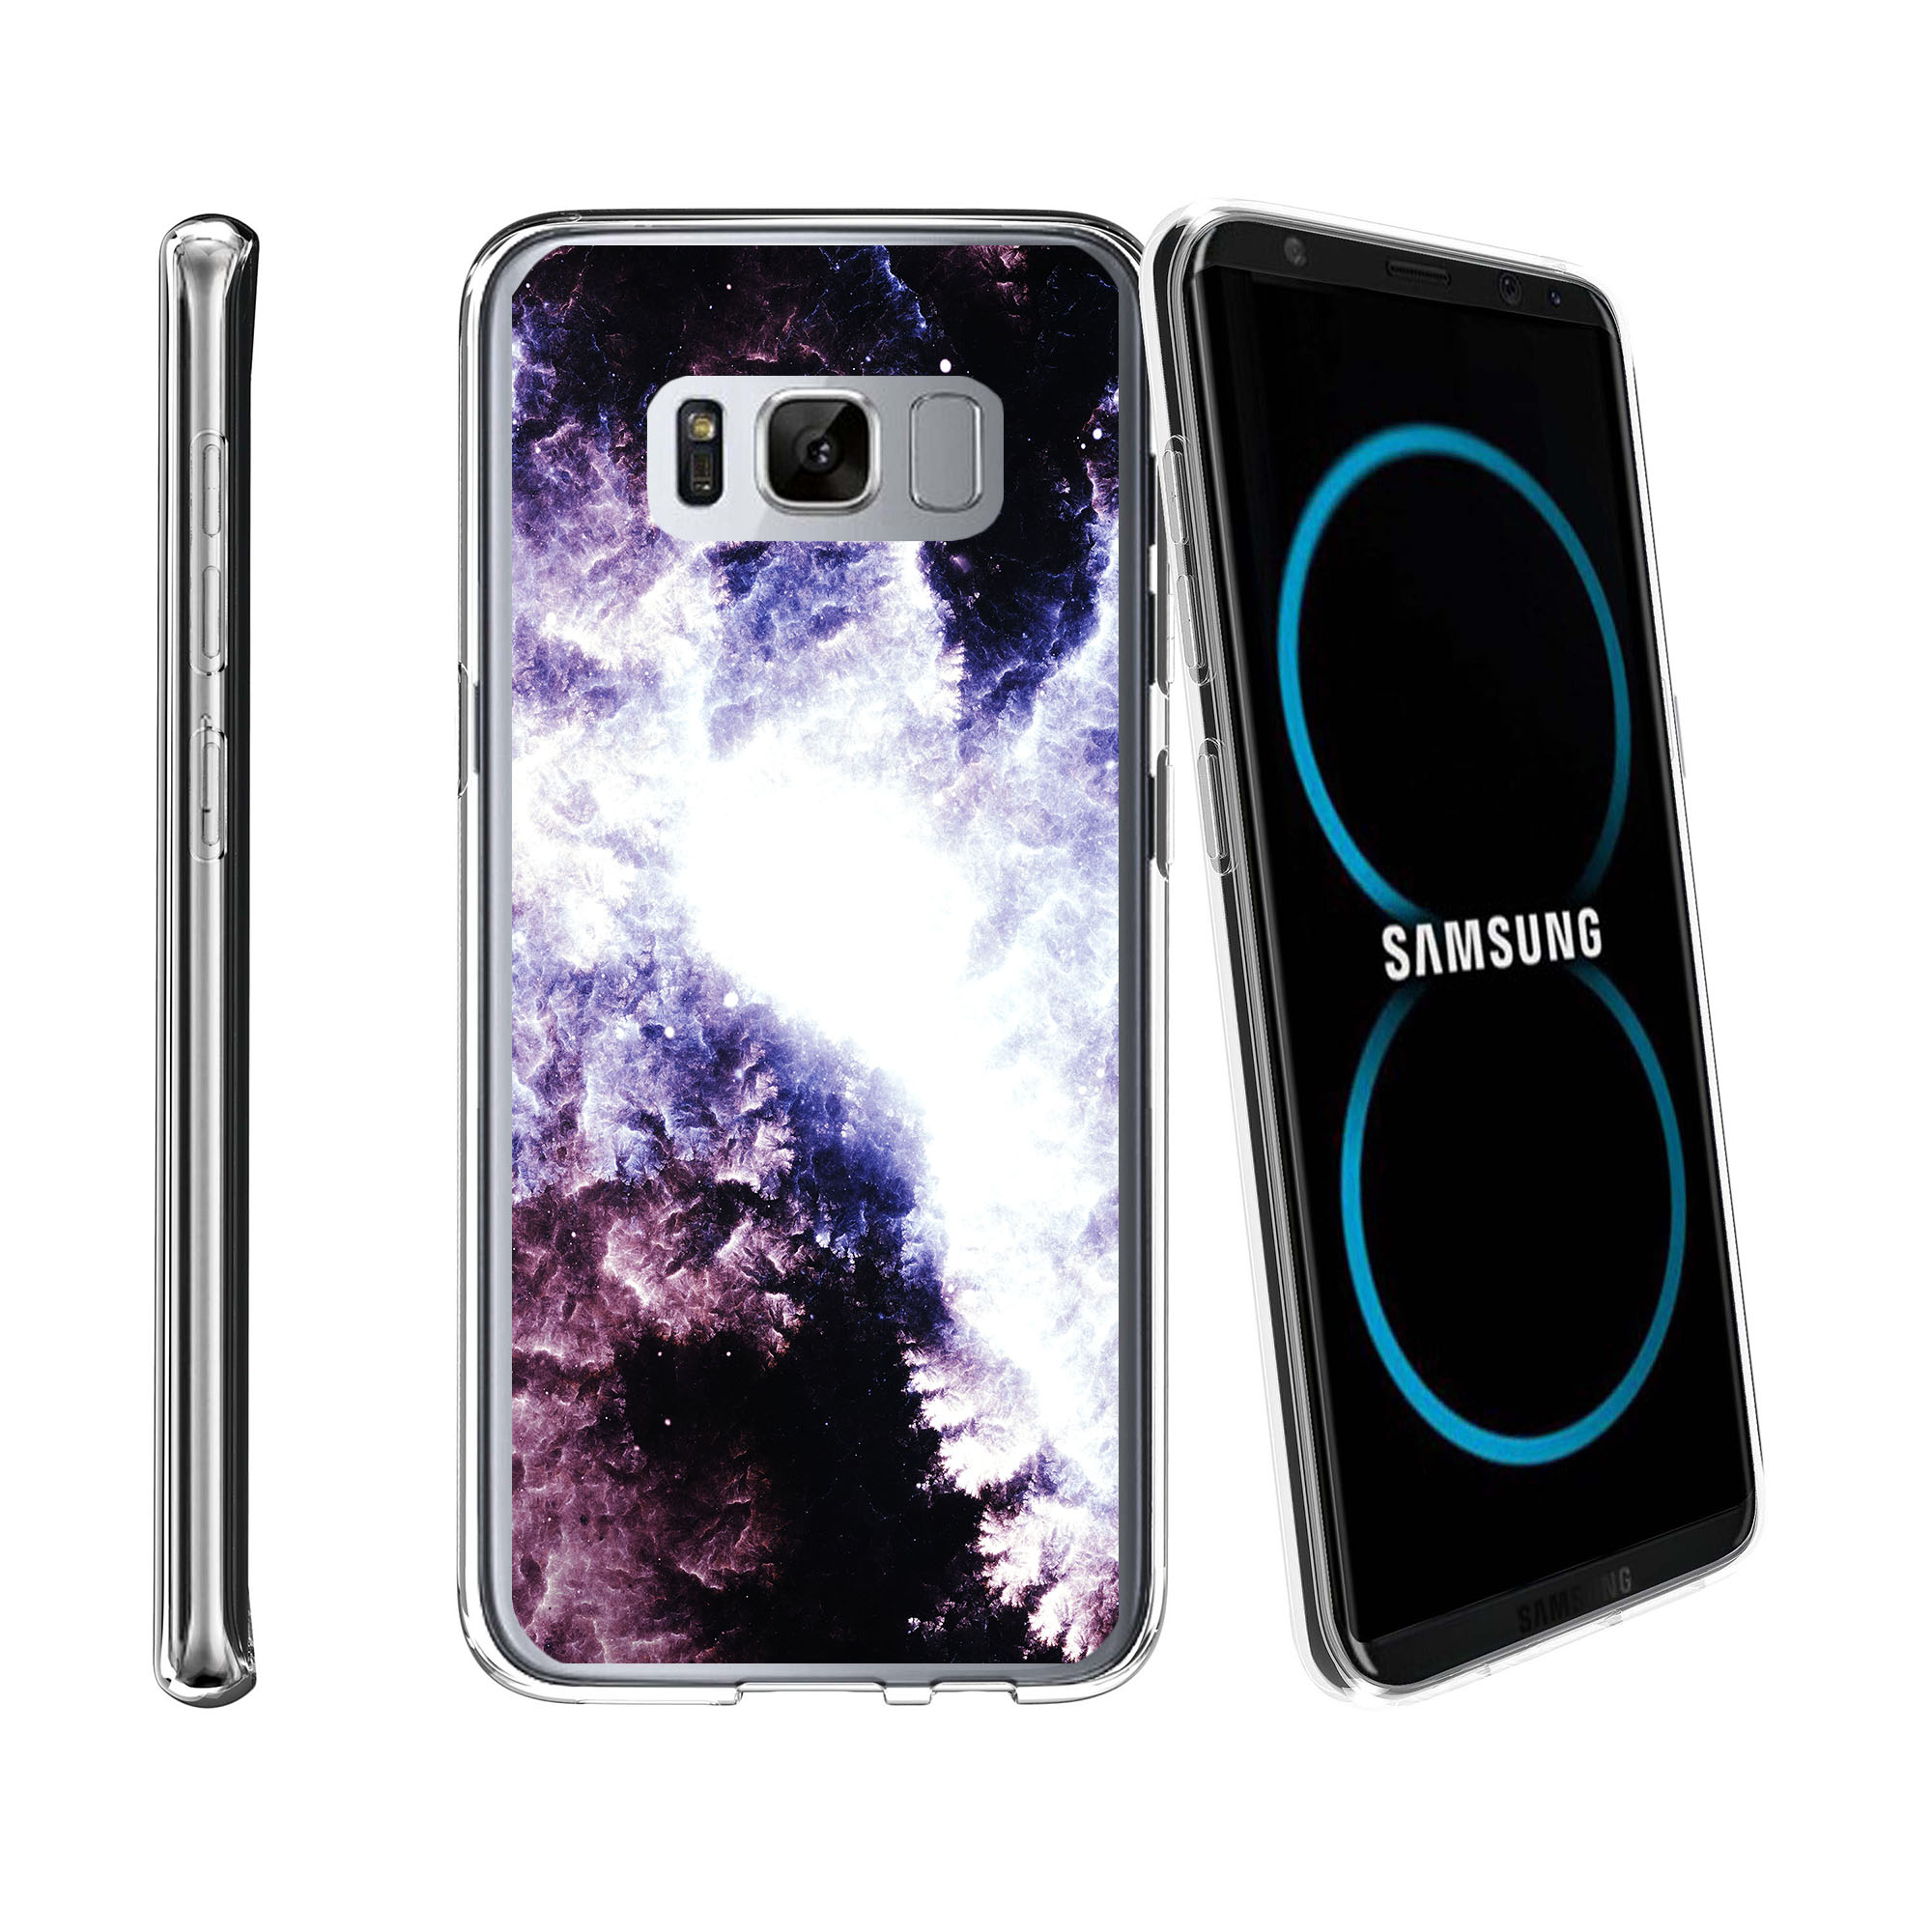 Case for Samsung Galaxy S8 Plus | Galaxy S8 Plus Transparent Silicone Case [ Flex Force ] Flexible Clear Case Galaxy Collection